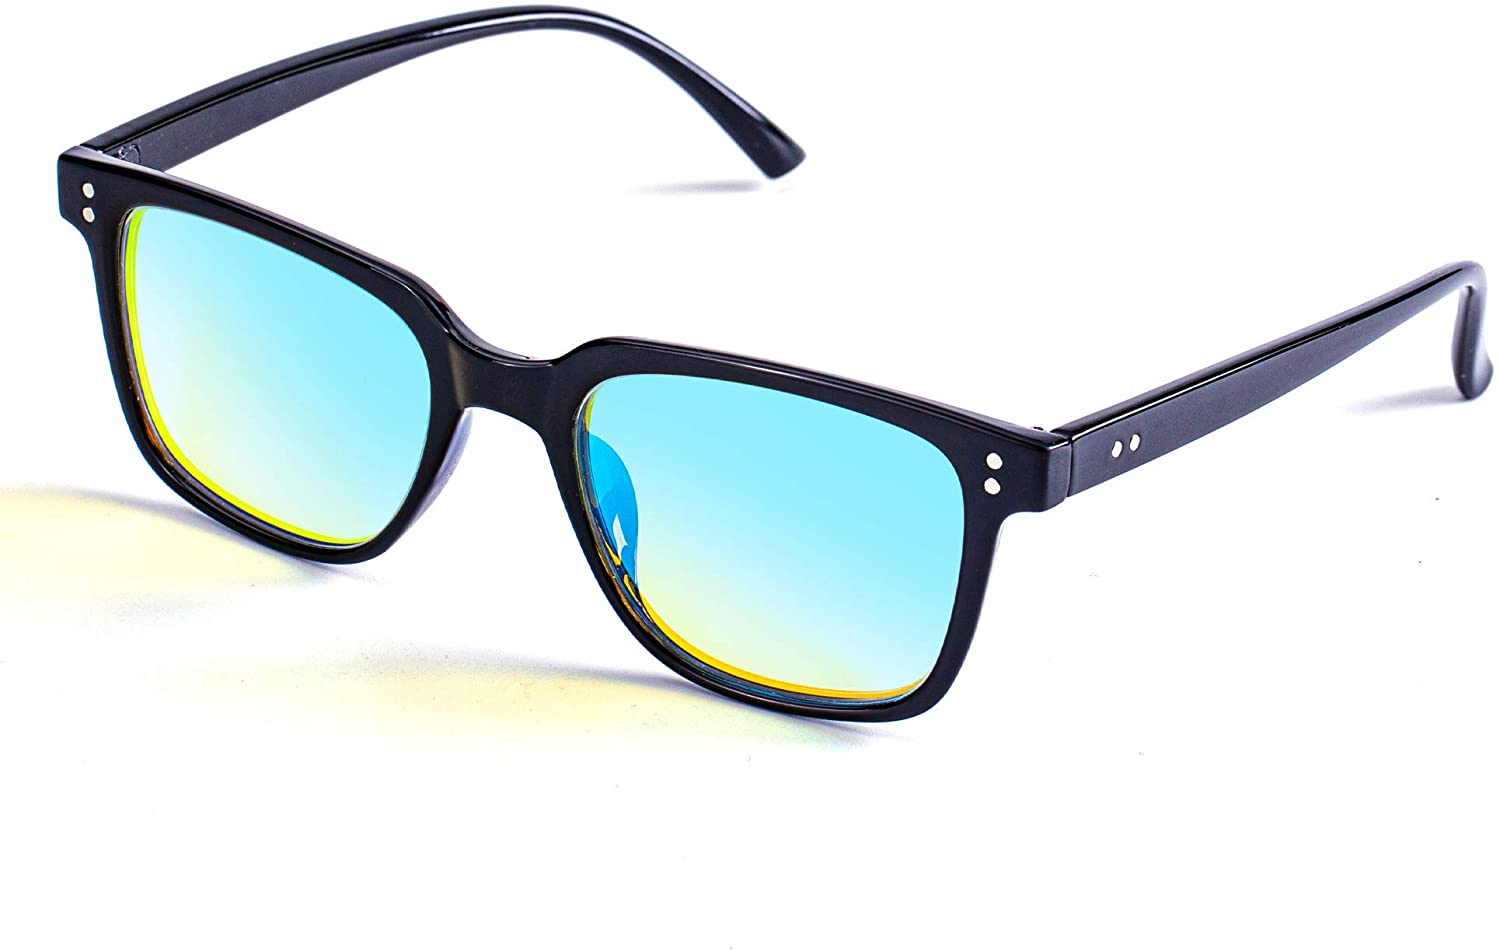 Colorblind Glasses for Men All Color Blindness Glasses Both Outdoor and Indoor Use